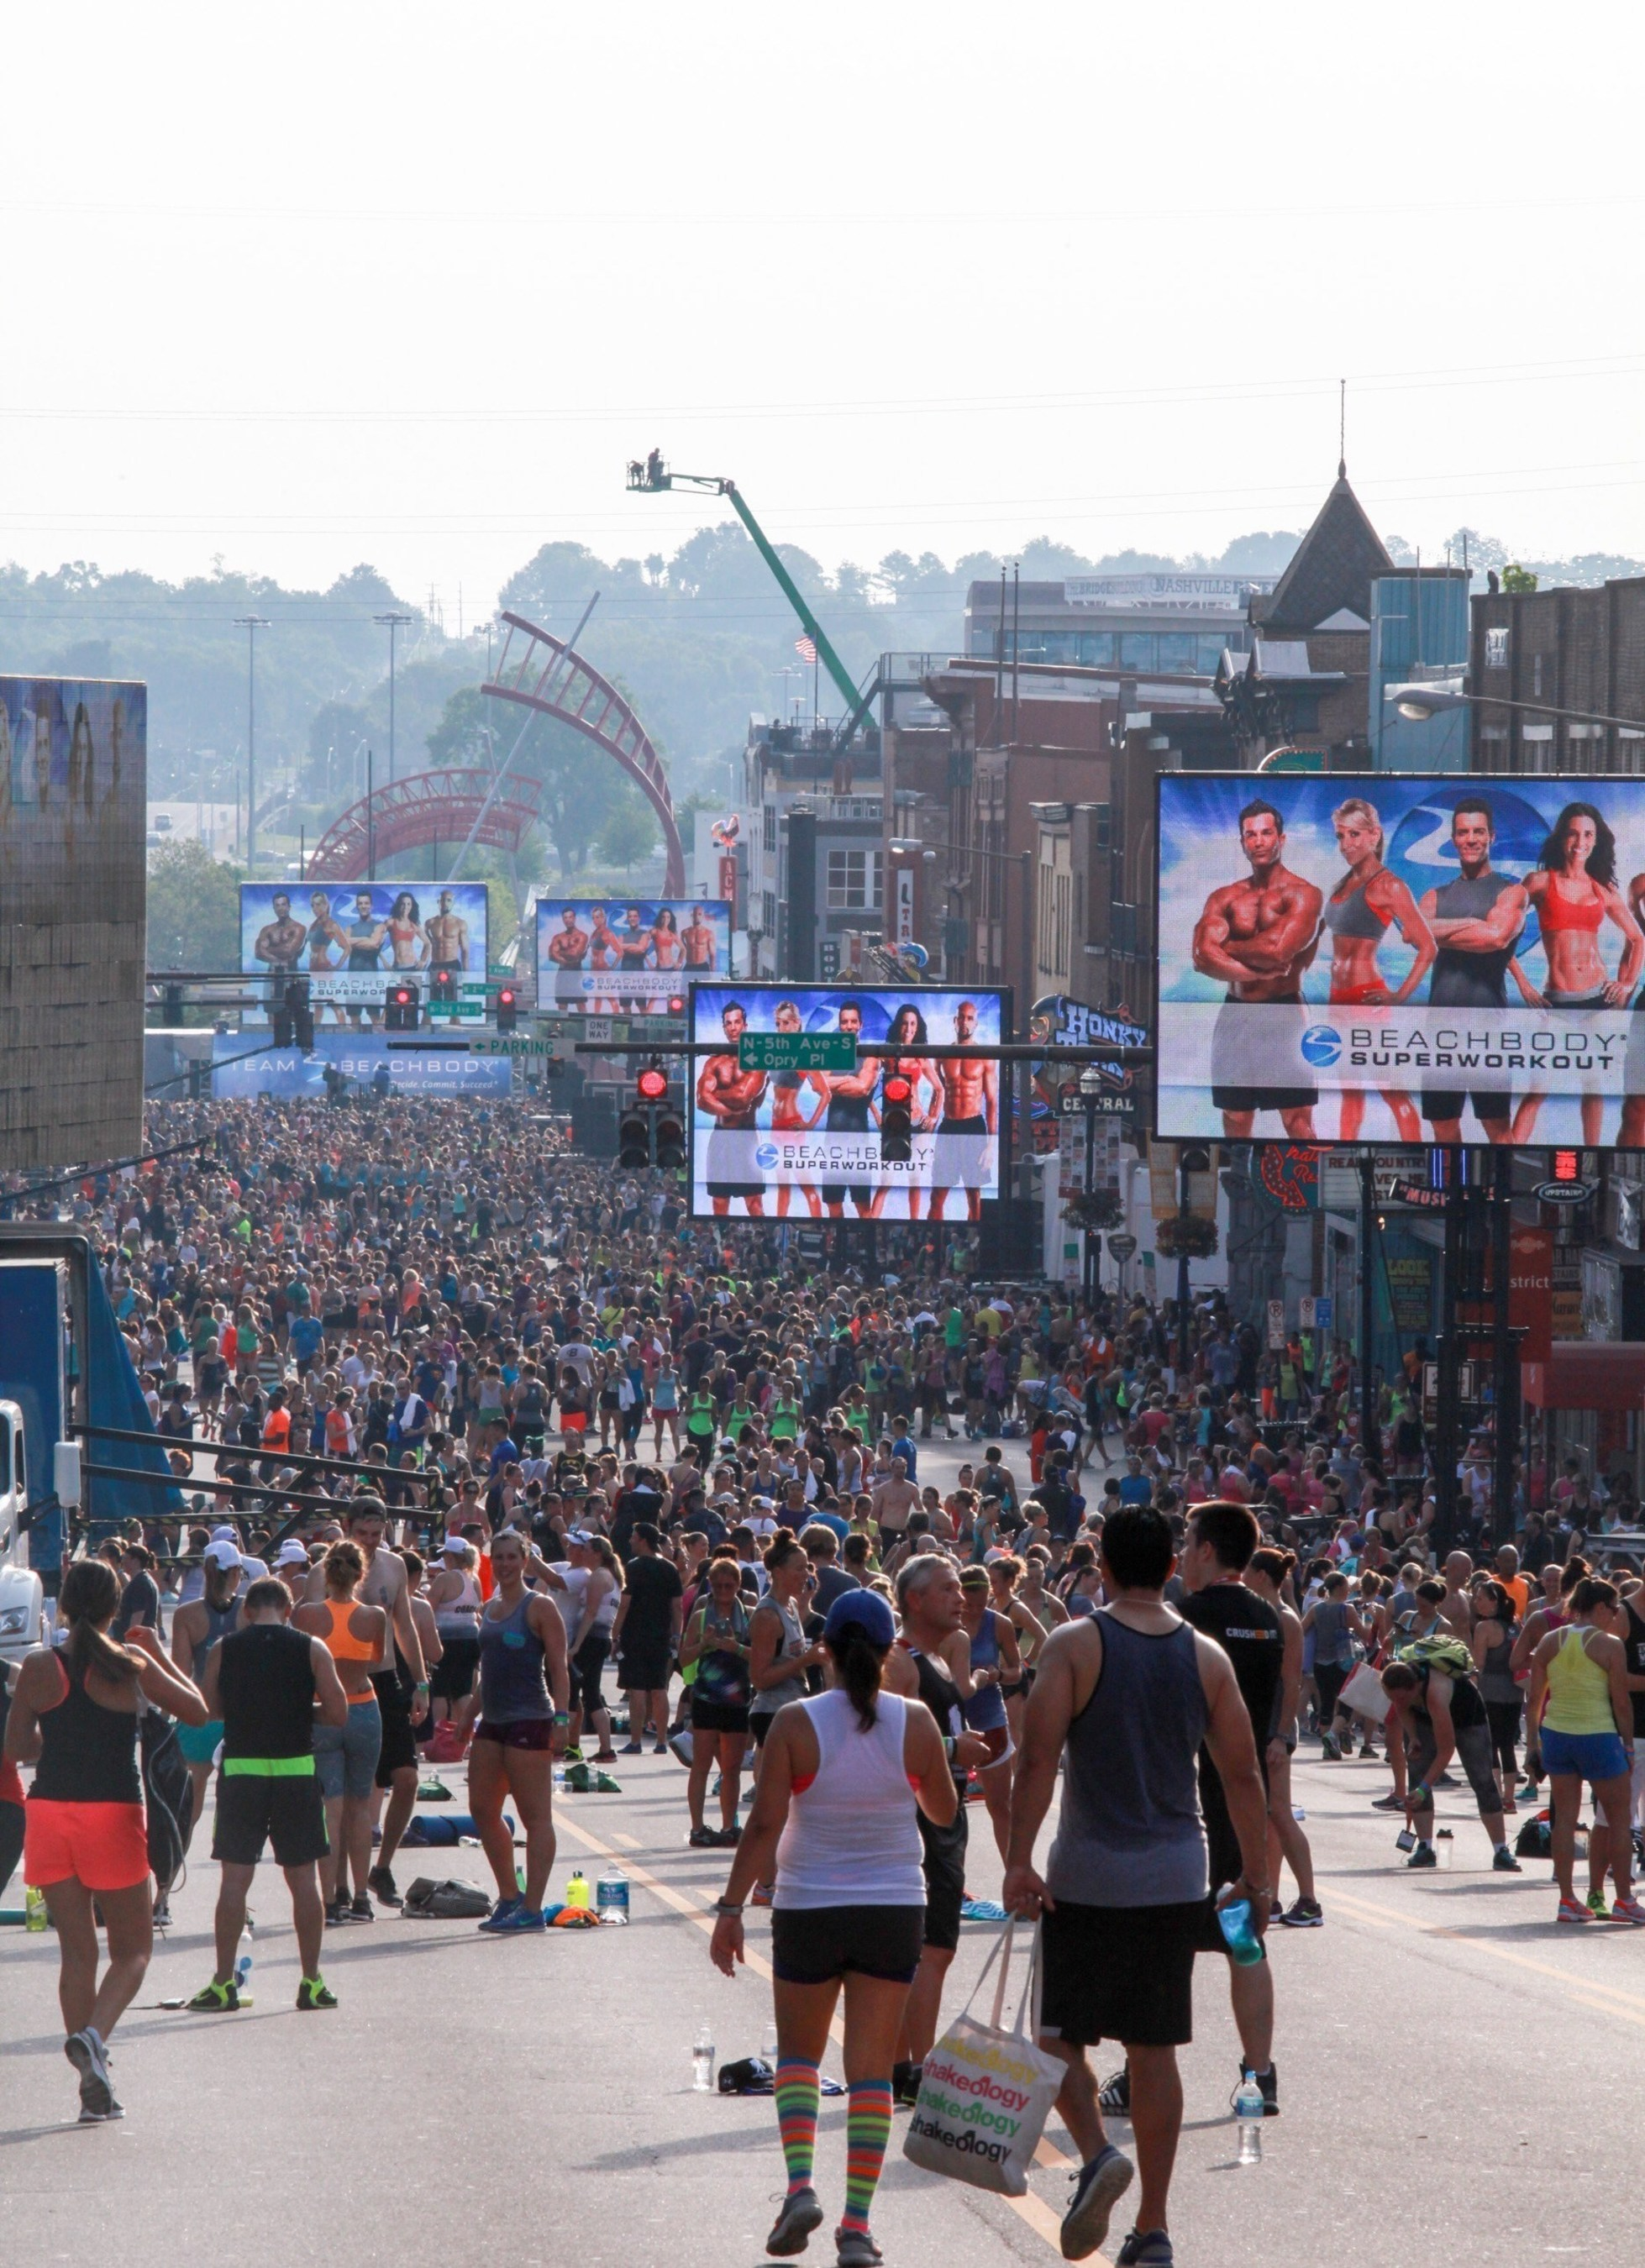 More than 20,000 people participated in Beachbody's Super Workout held in the streets of Nashville and streamed live at BeachbodyOnDemand.com